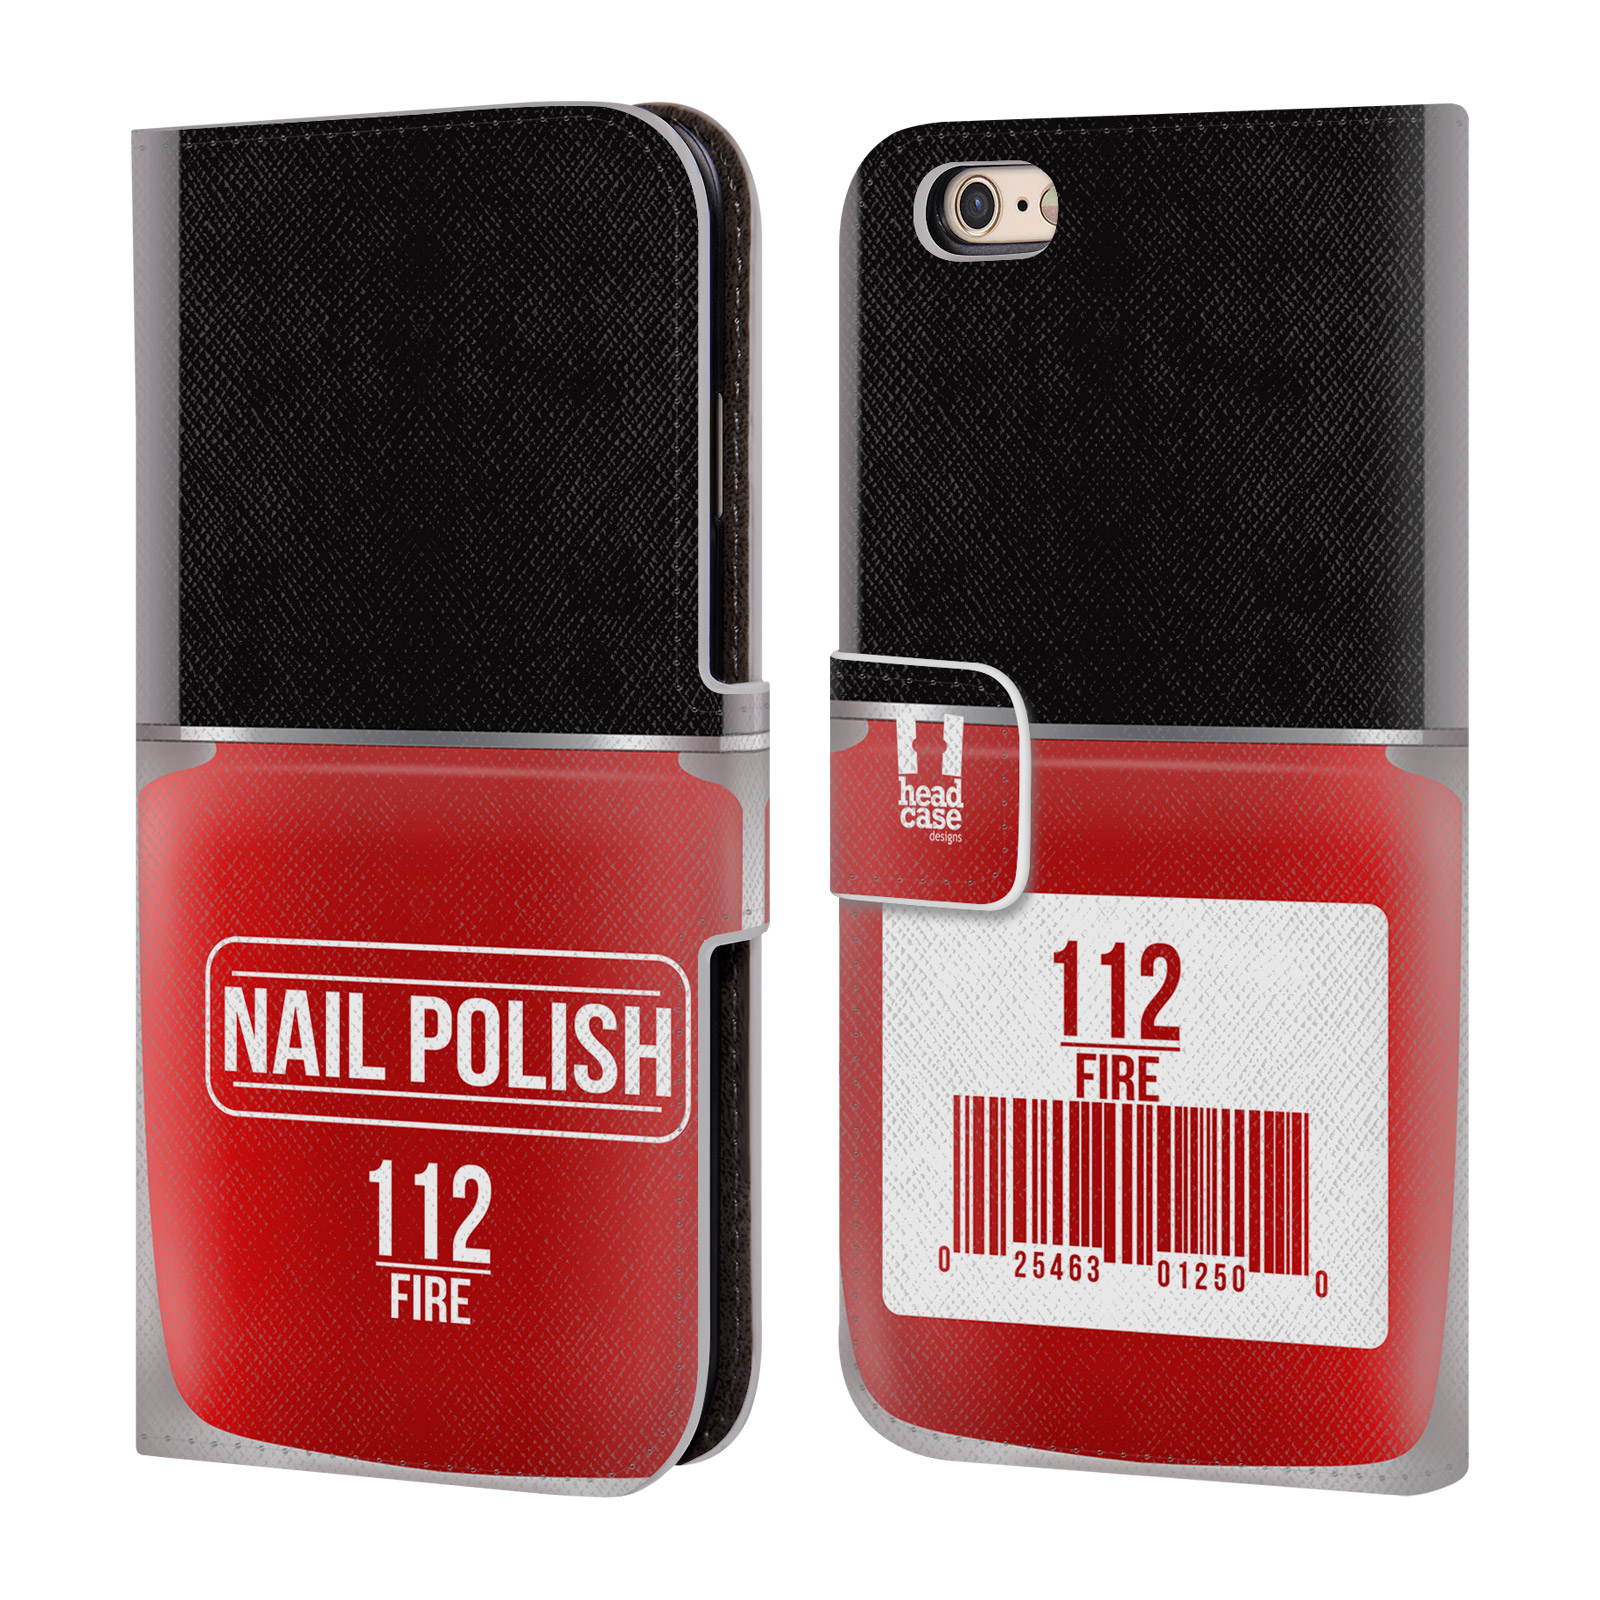 Marble Nail Polish Phone Case: HEAD CASE DESIGNS NAIL POLISH LEATHER BOOK WALLET CASE FOR